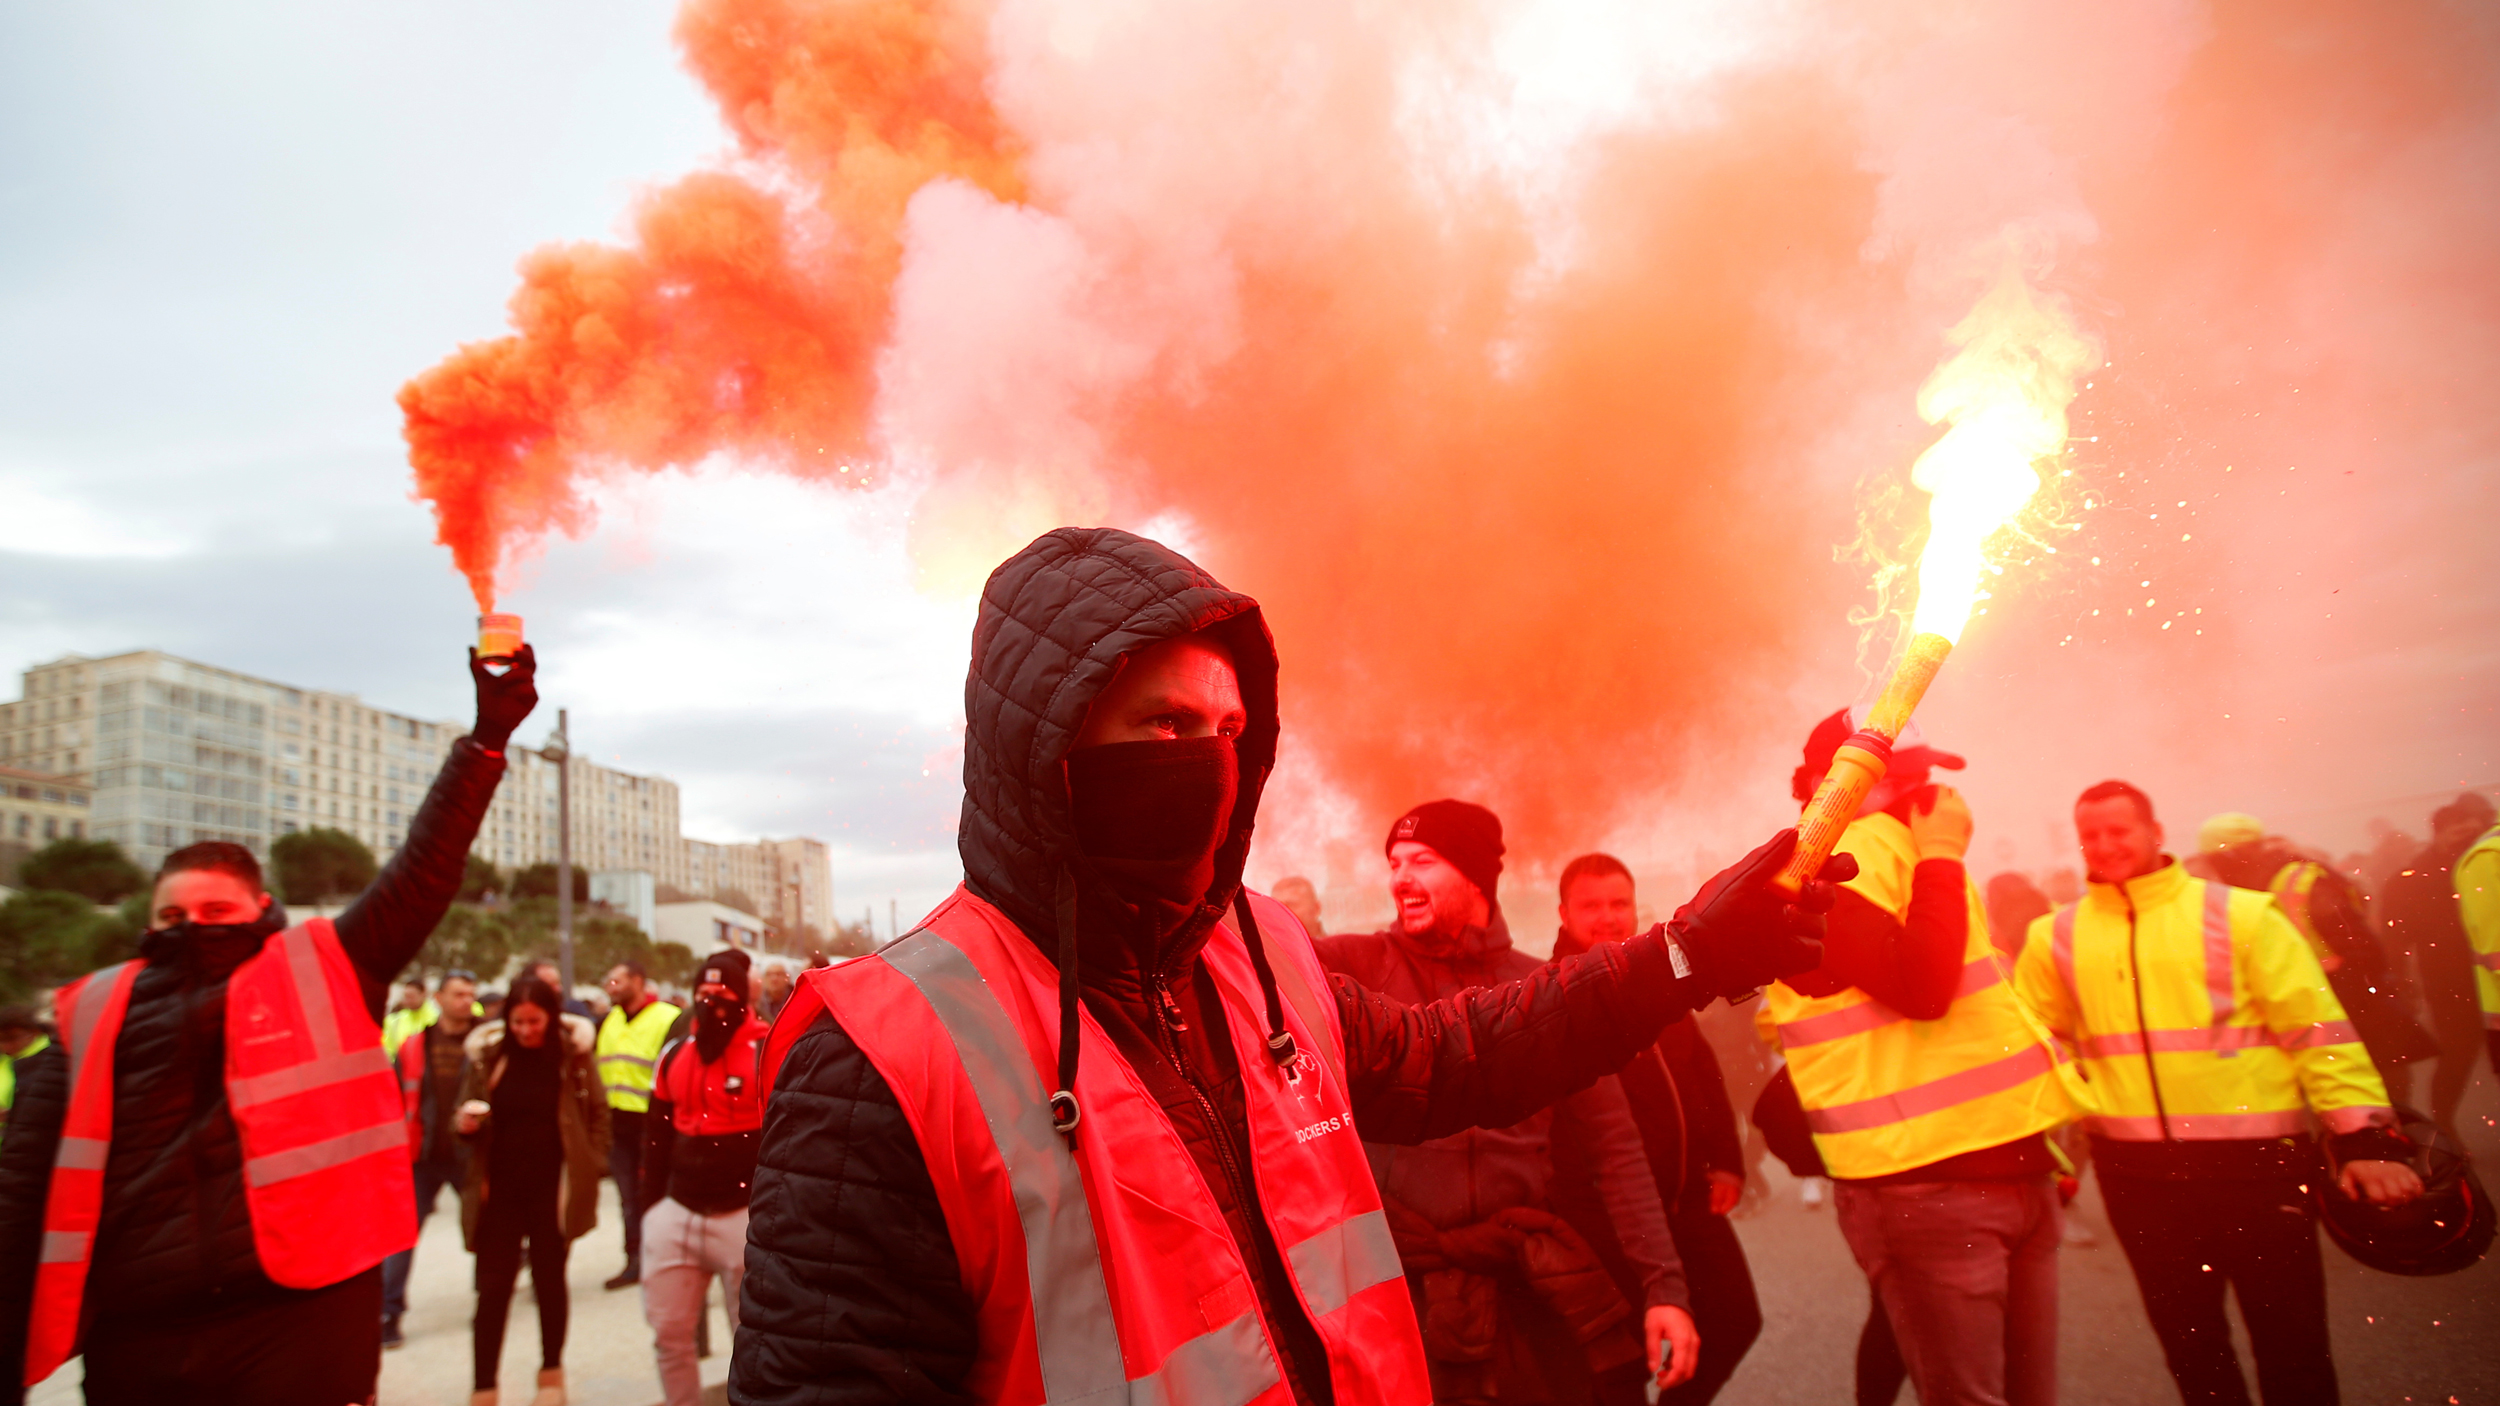 A group of protesters are shown wearing reflective vest and two men are holding bright road flares.